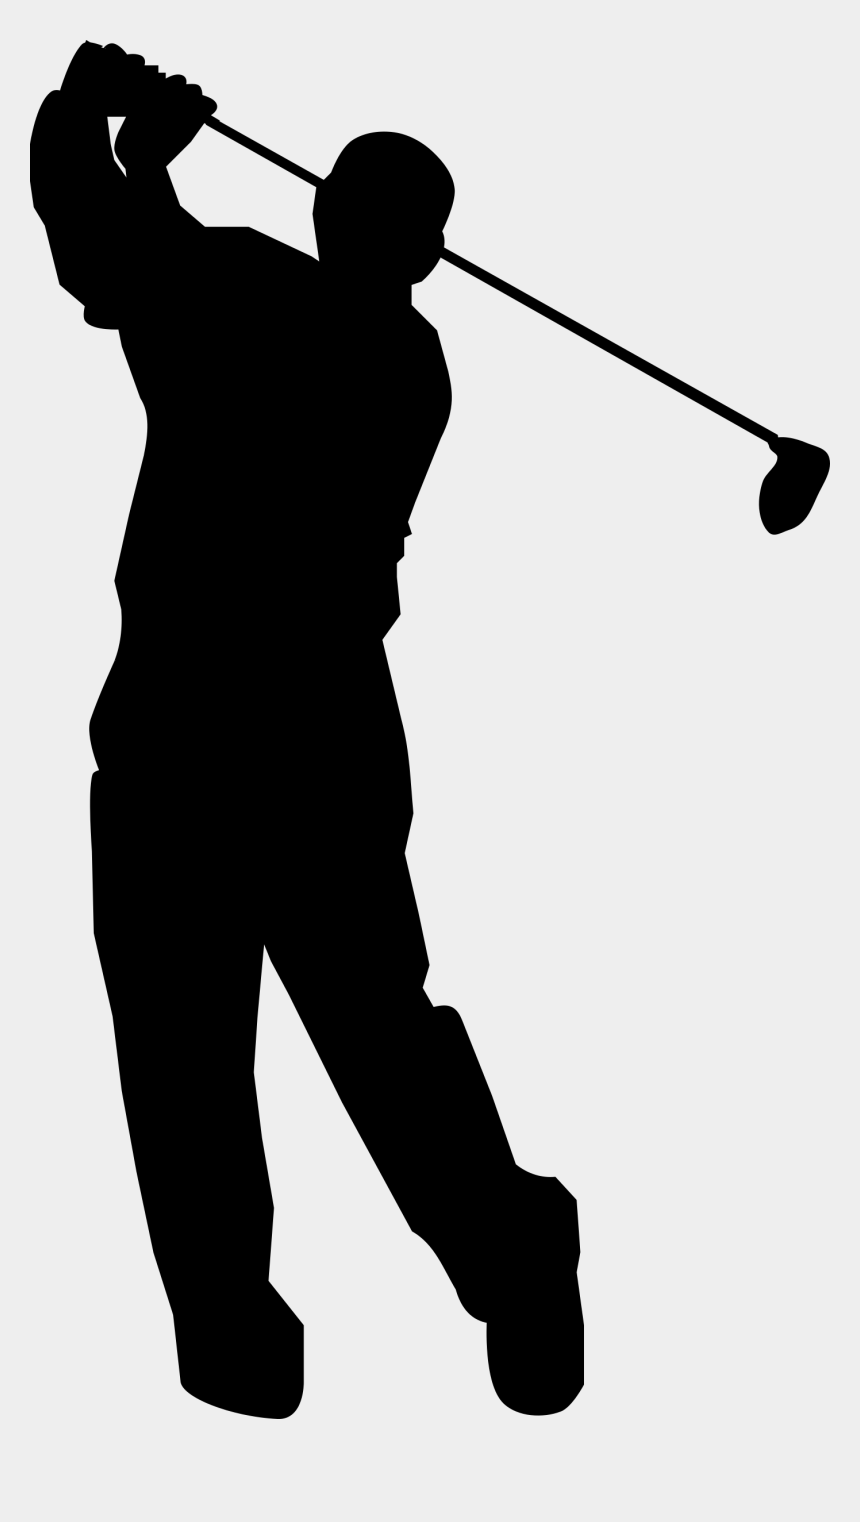 Golf Ball Png Golfer Clipart Black And White Cliparts Cartoons Jing Fm